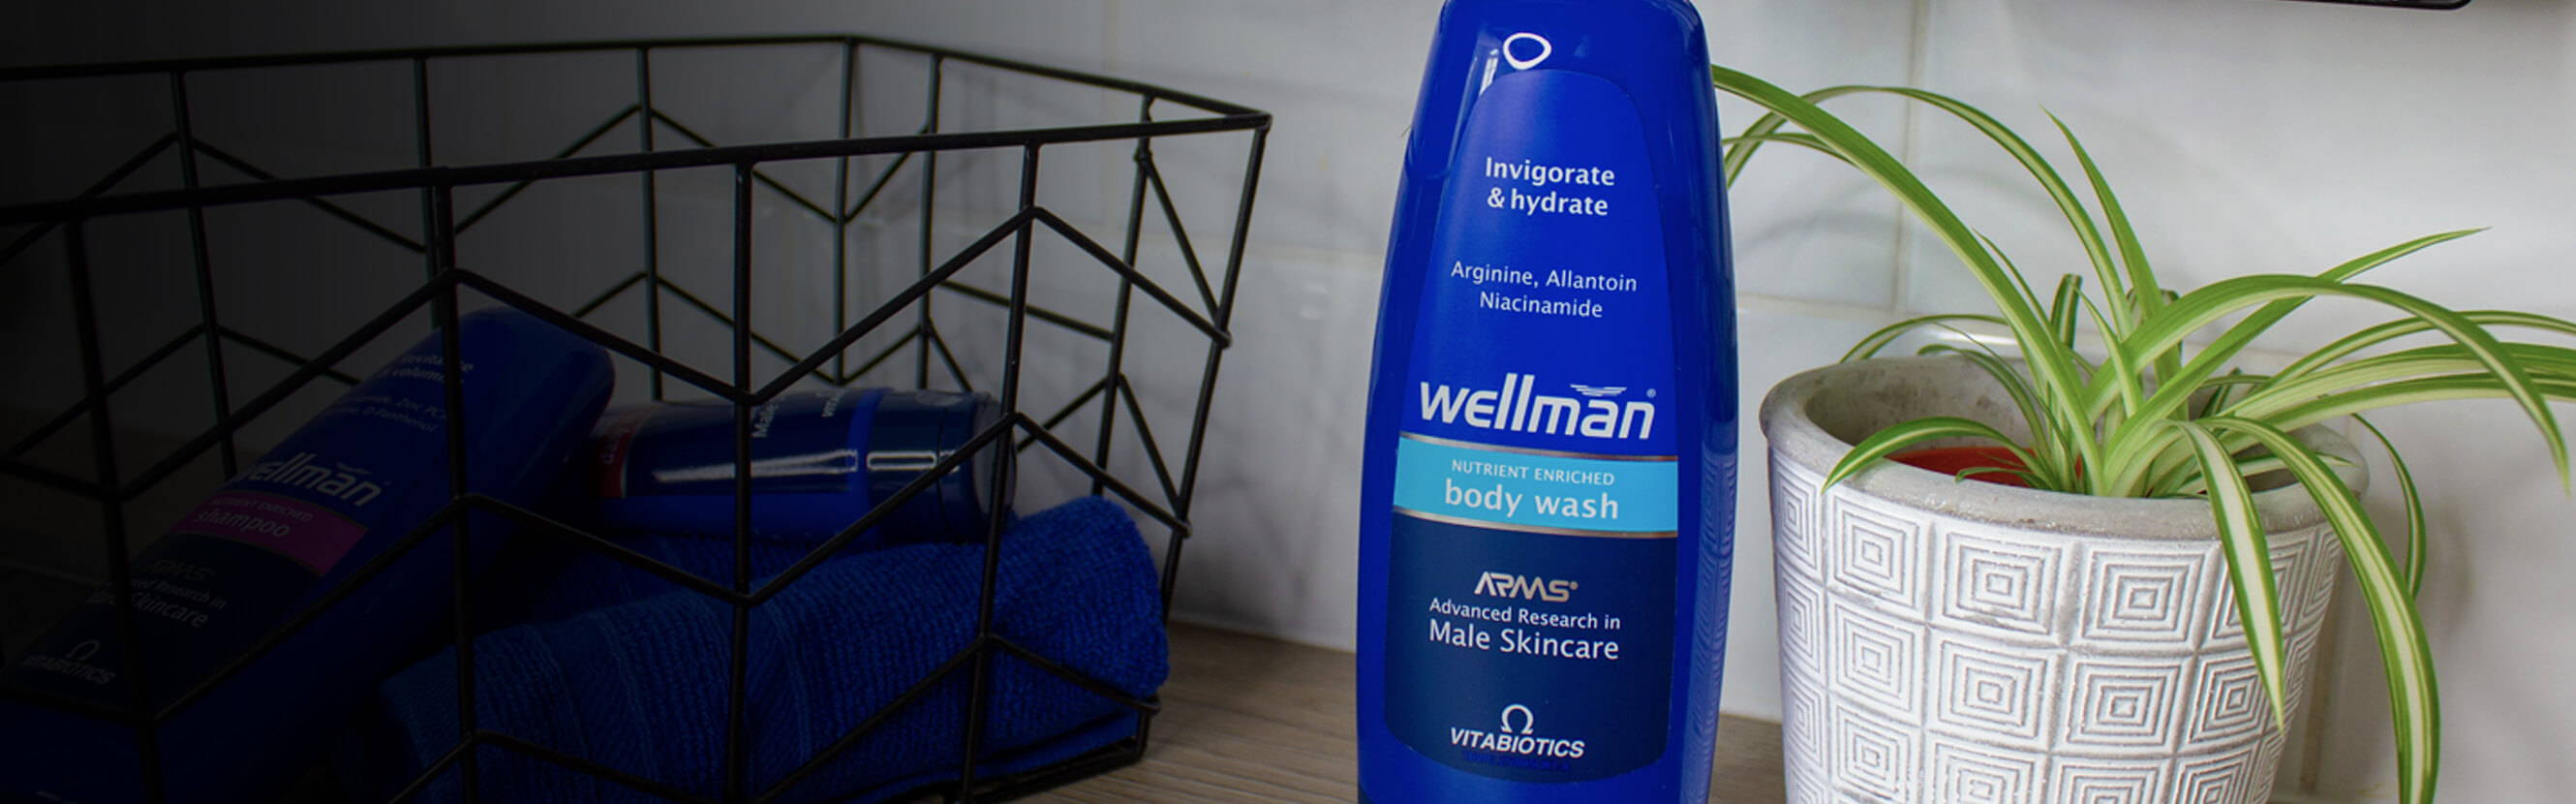 It's not just about clean. The shower is where you take control. Gather your thoughts. Set your goals. And with Welllman Body Wash, it's where you can cleanse and nourish your skin with biolipids that keep it smooth and supple for up to 24 hours.